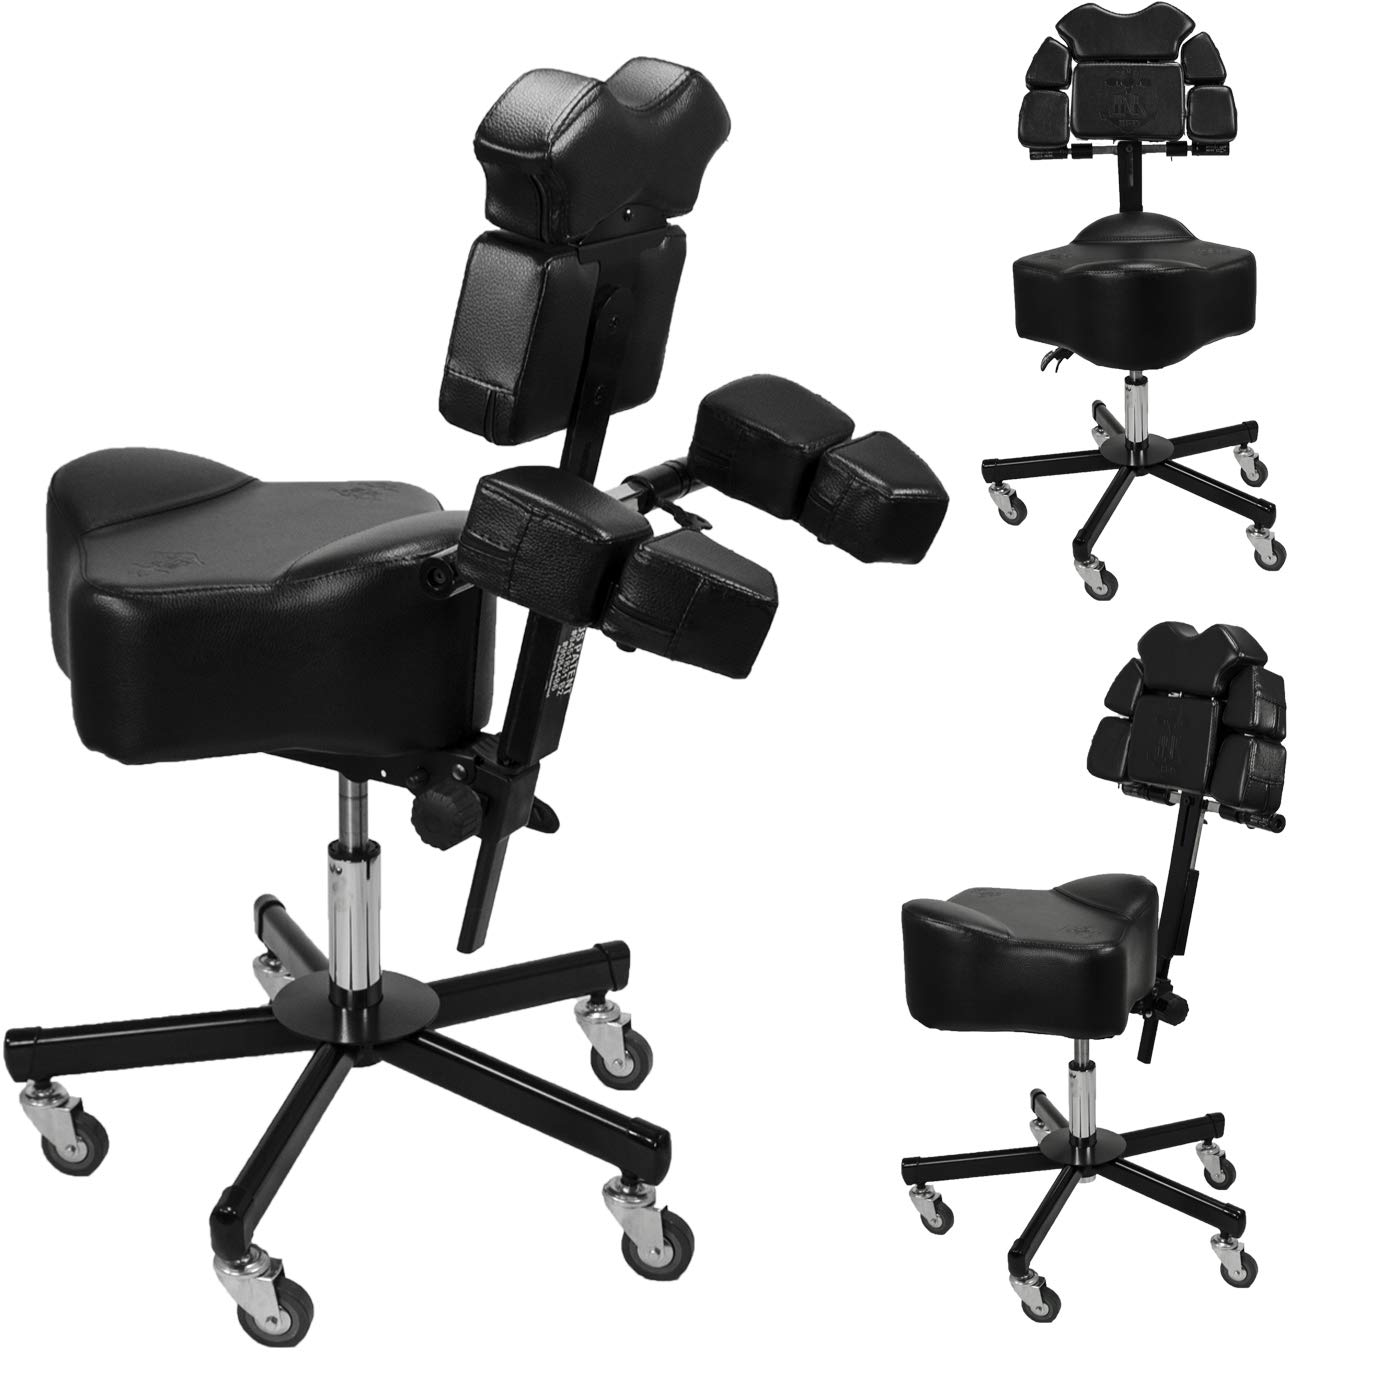 Brand New InkBed Patented Adjustable Ergonomic Chair Stool Chest Back Rest Support Tattoo Studio Equipment (Black) by InkBed